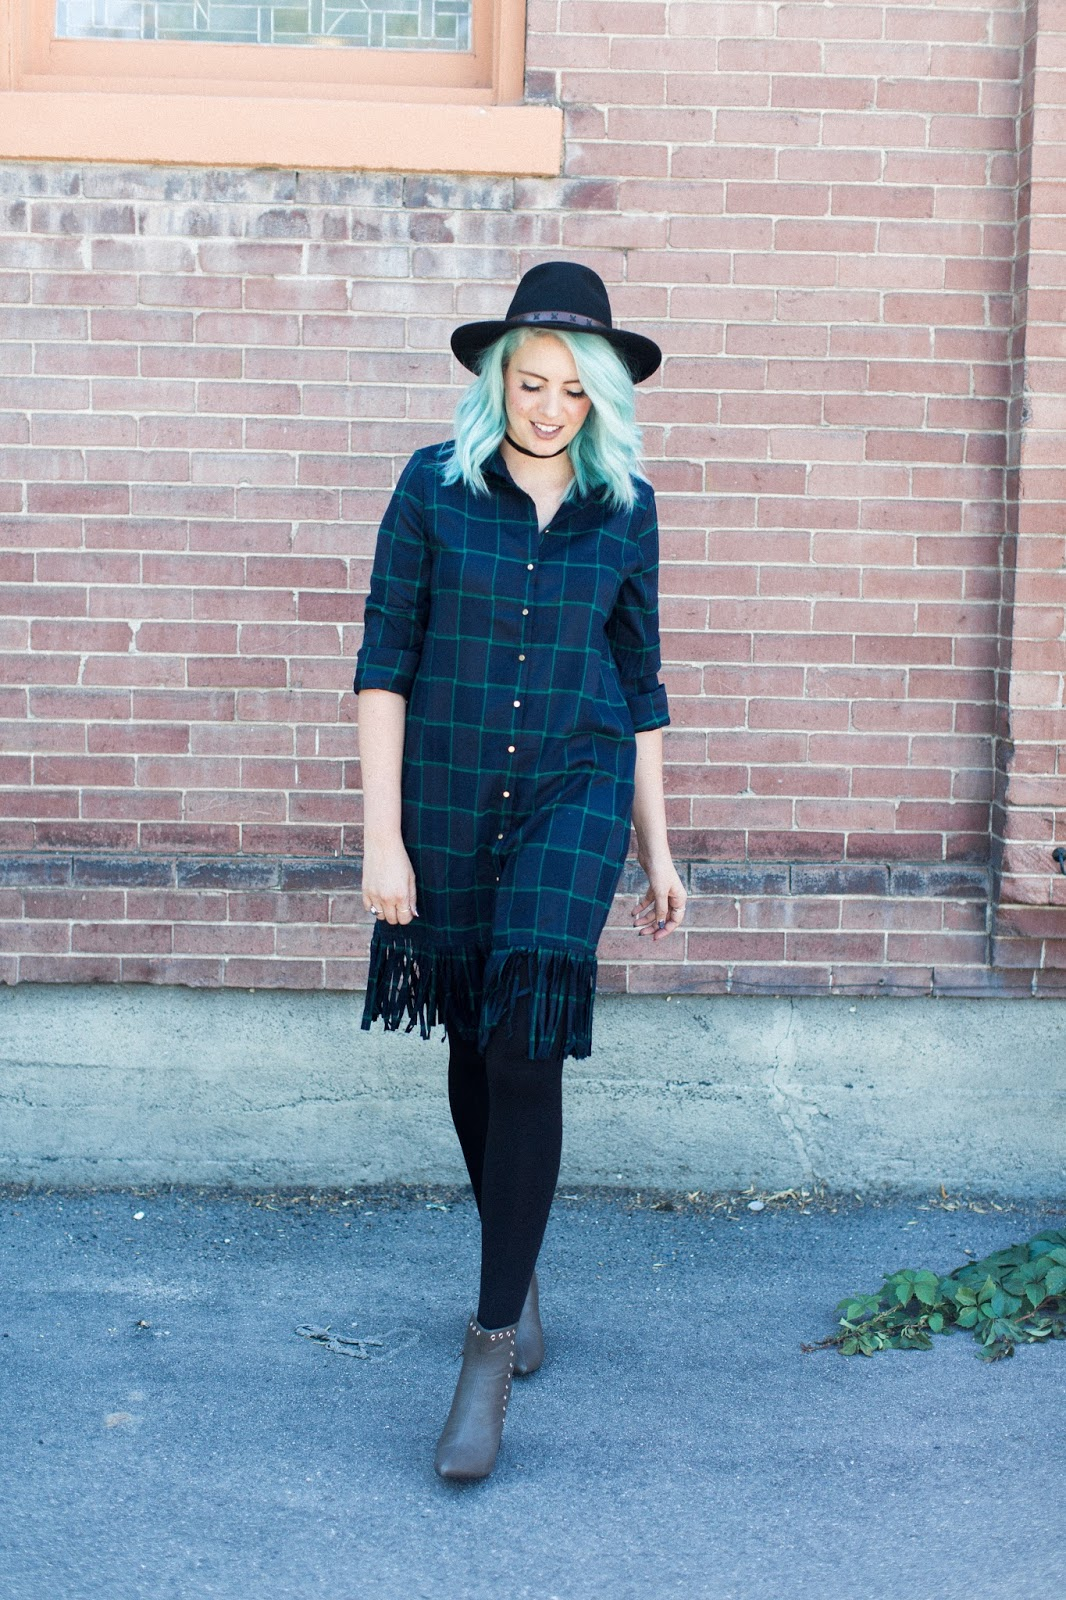 Blue hair, fringe and plaid, Utah Fashion blogger